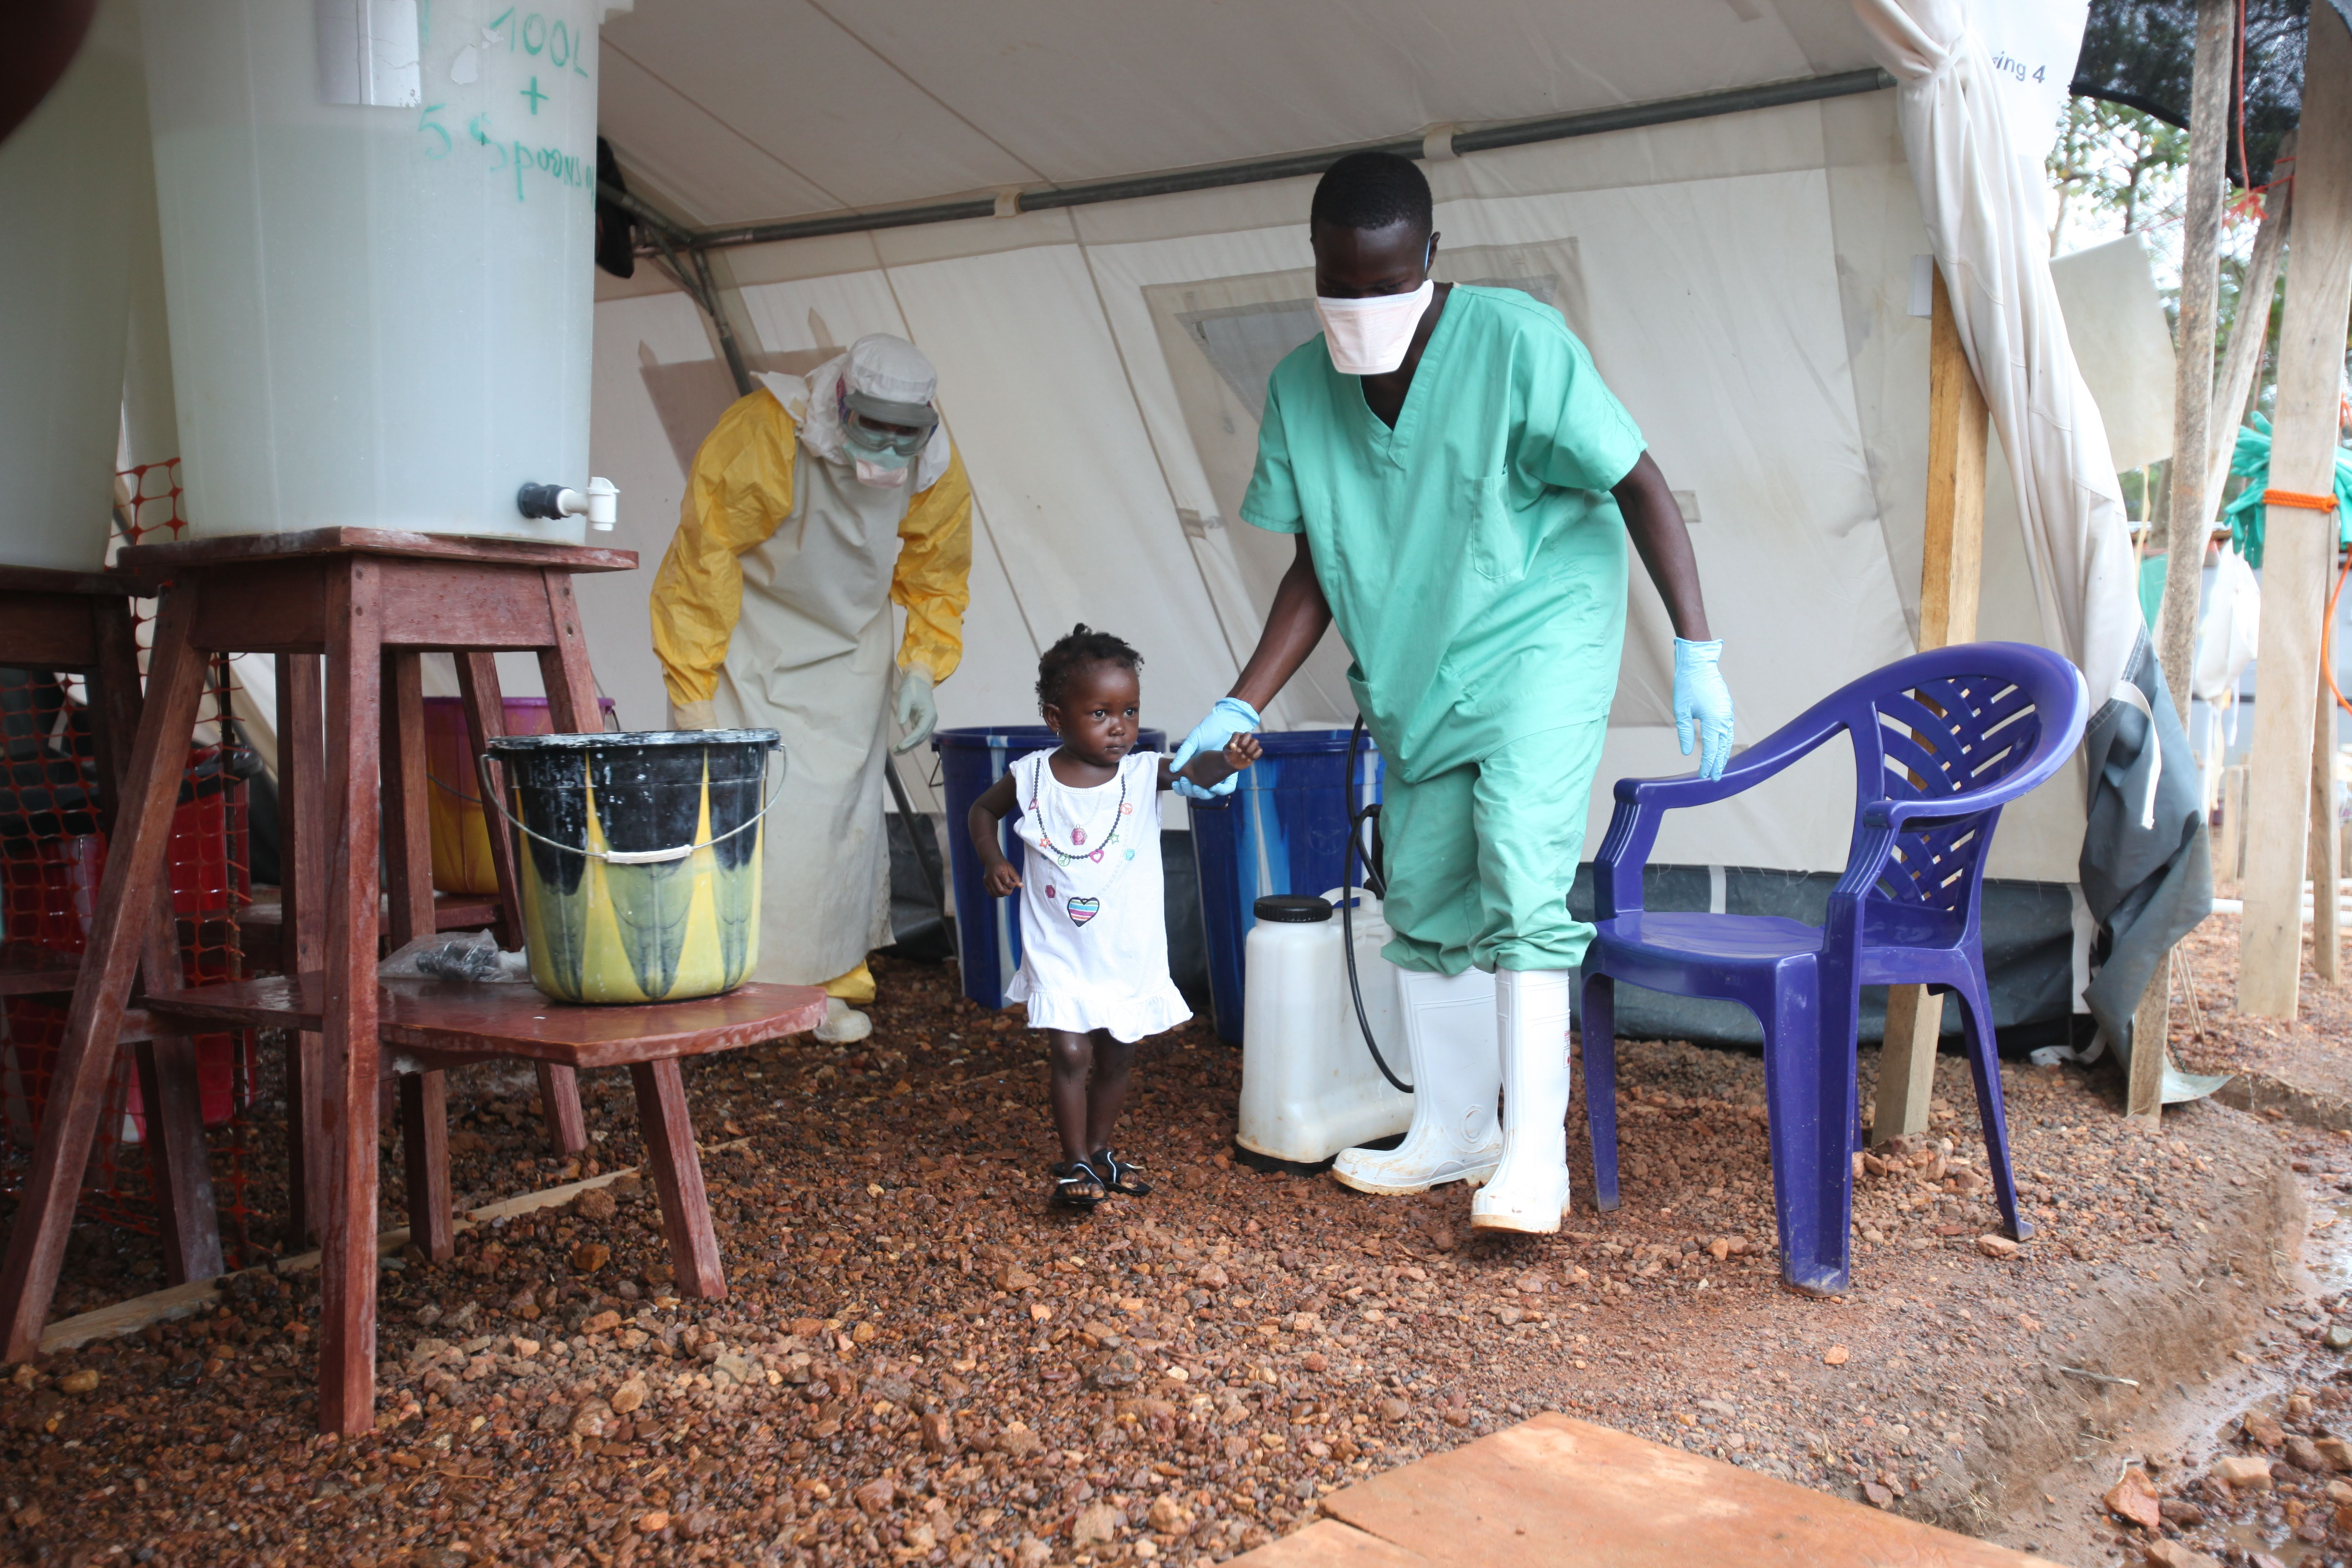 Isata, a 22-month-old, is the youngest patient to be discharged from the Ebola treatment centre in Kailahun district, Sierra Leone on Aug. 6, 2014.